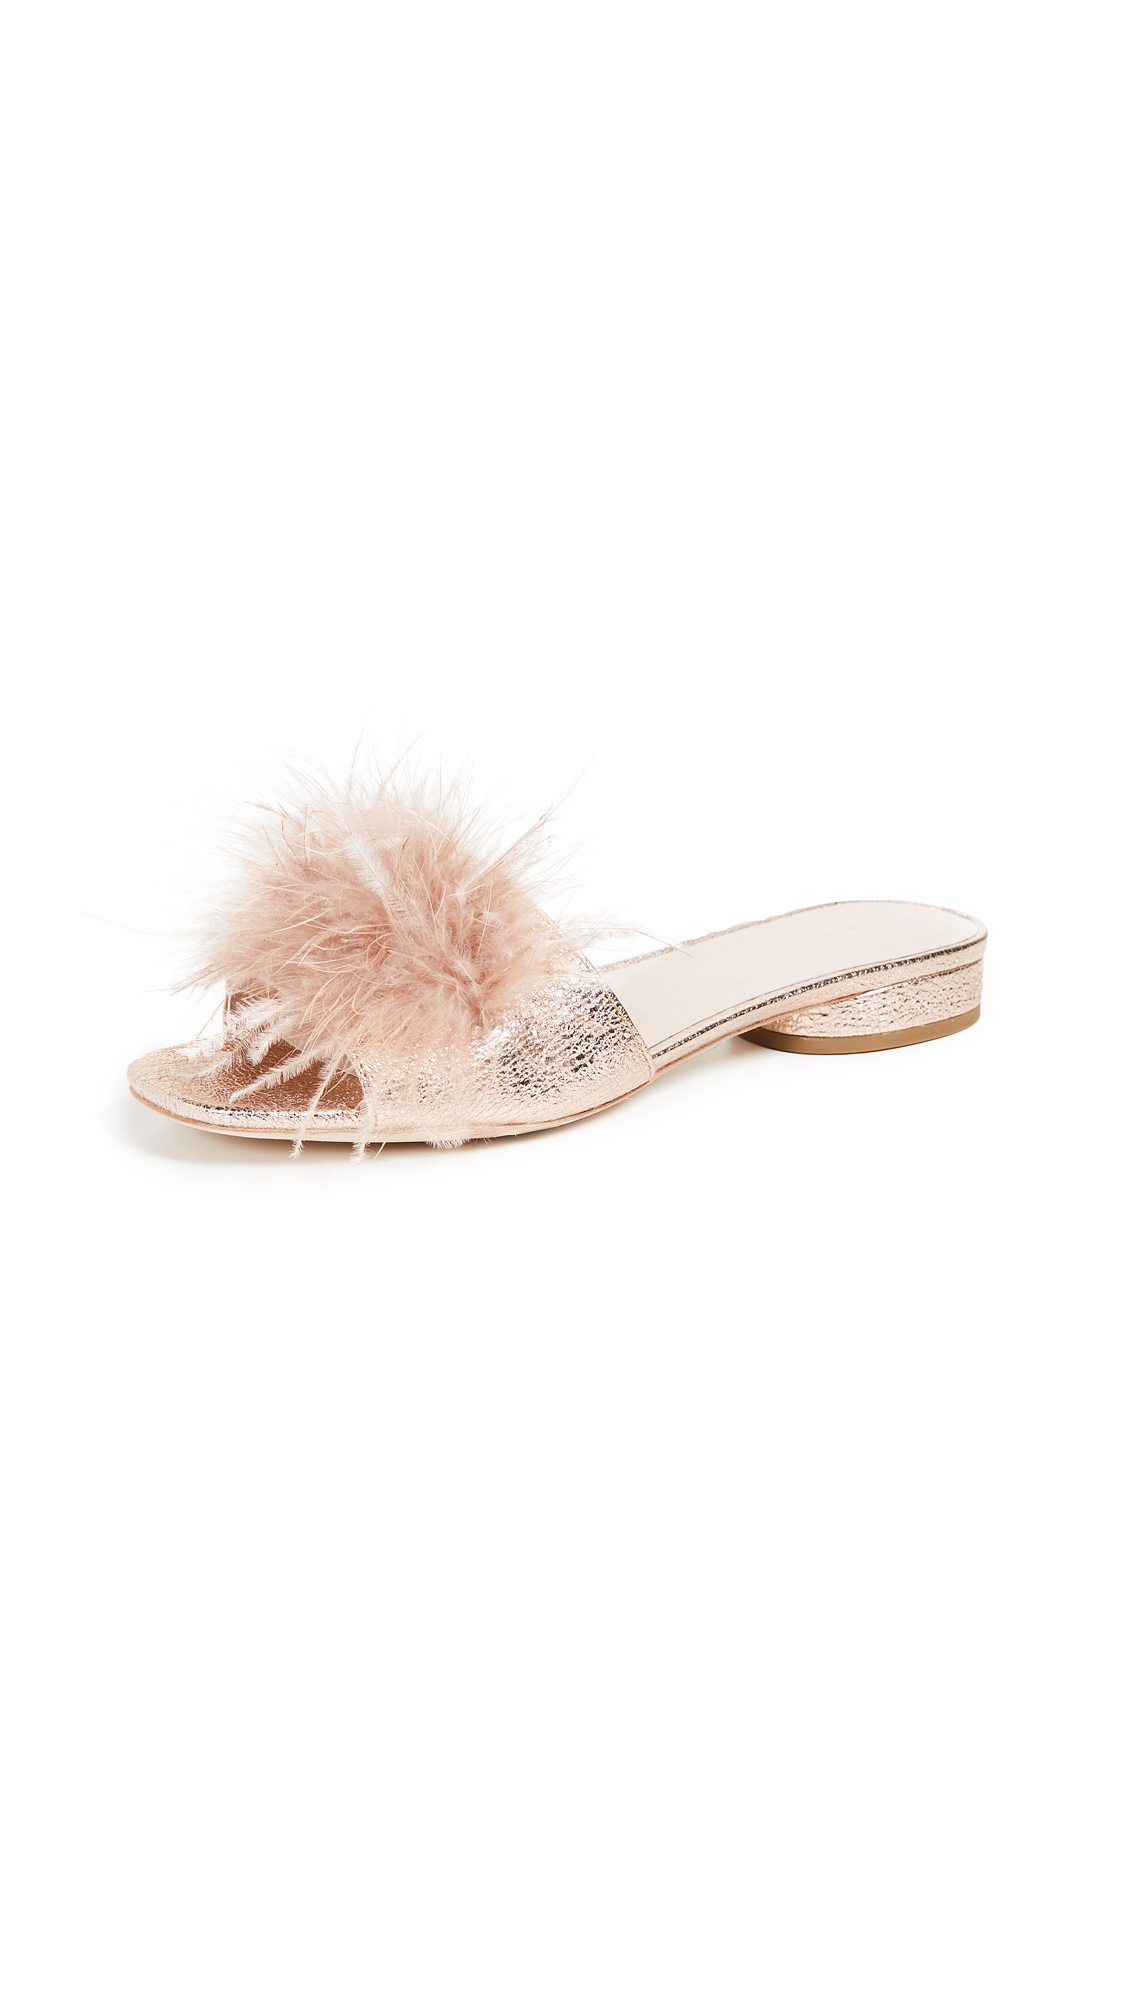 Loeffler Randall Lilly Slides - Rose Gold/Buff Pink